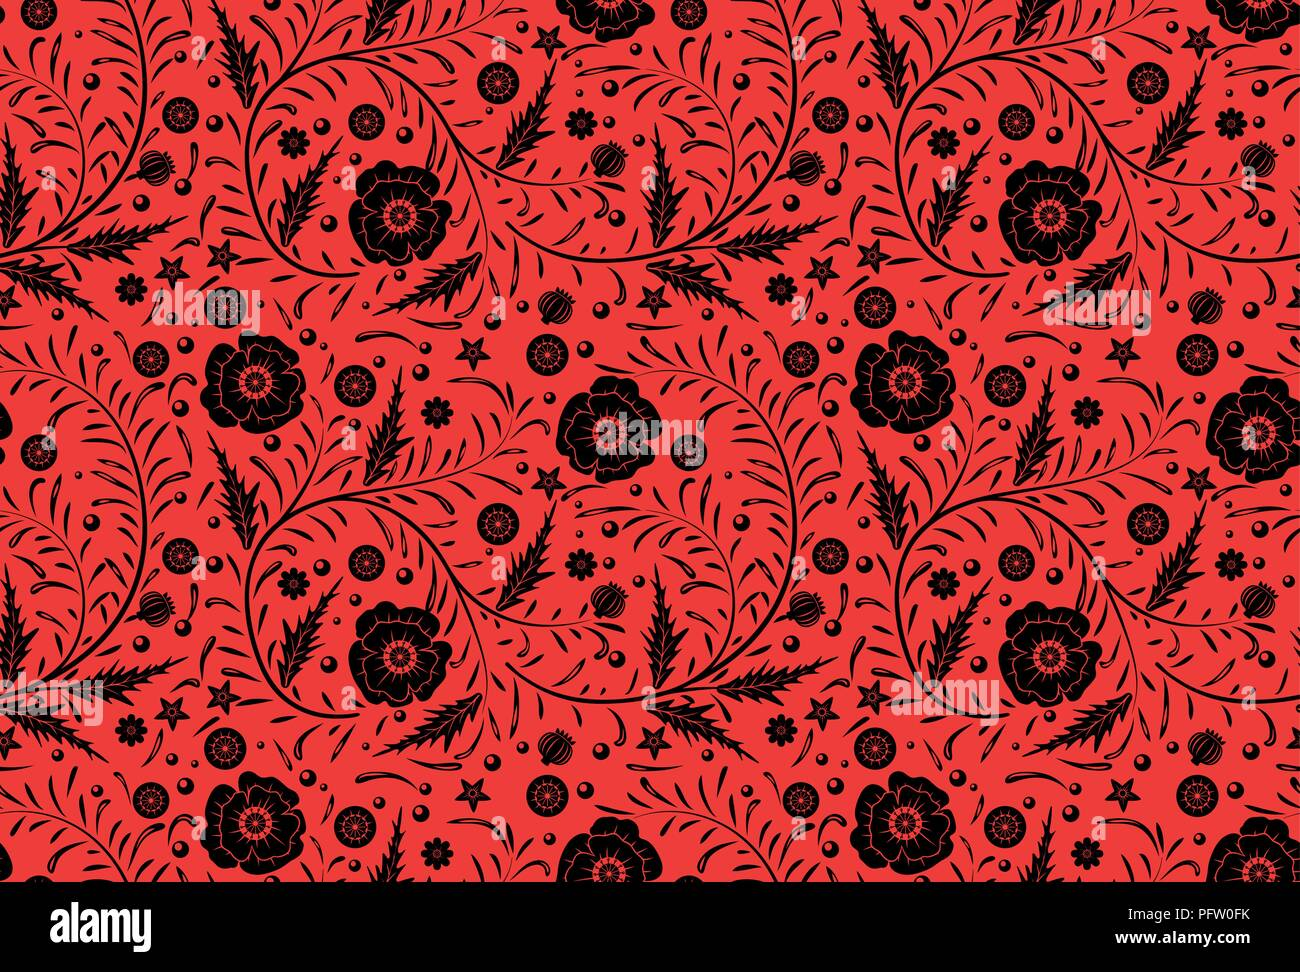 Vector Seamless floral pattern design hand drawn: Black poppies with vintage leaves on a red background. National style - Stock Vector